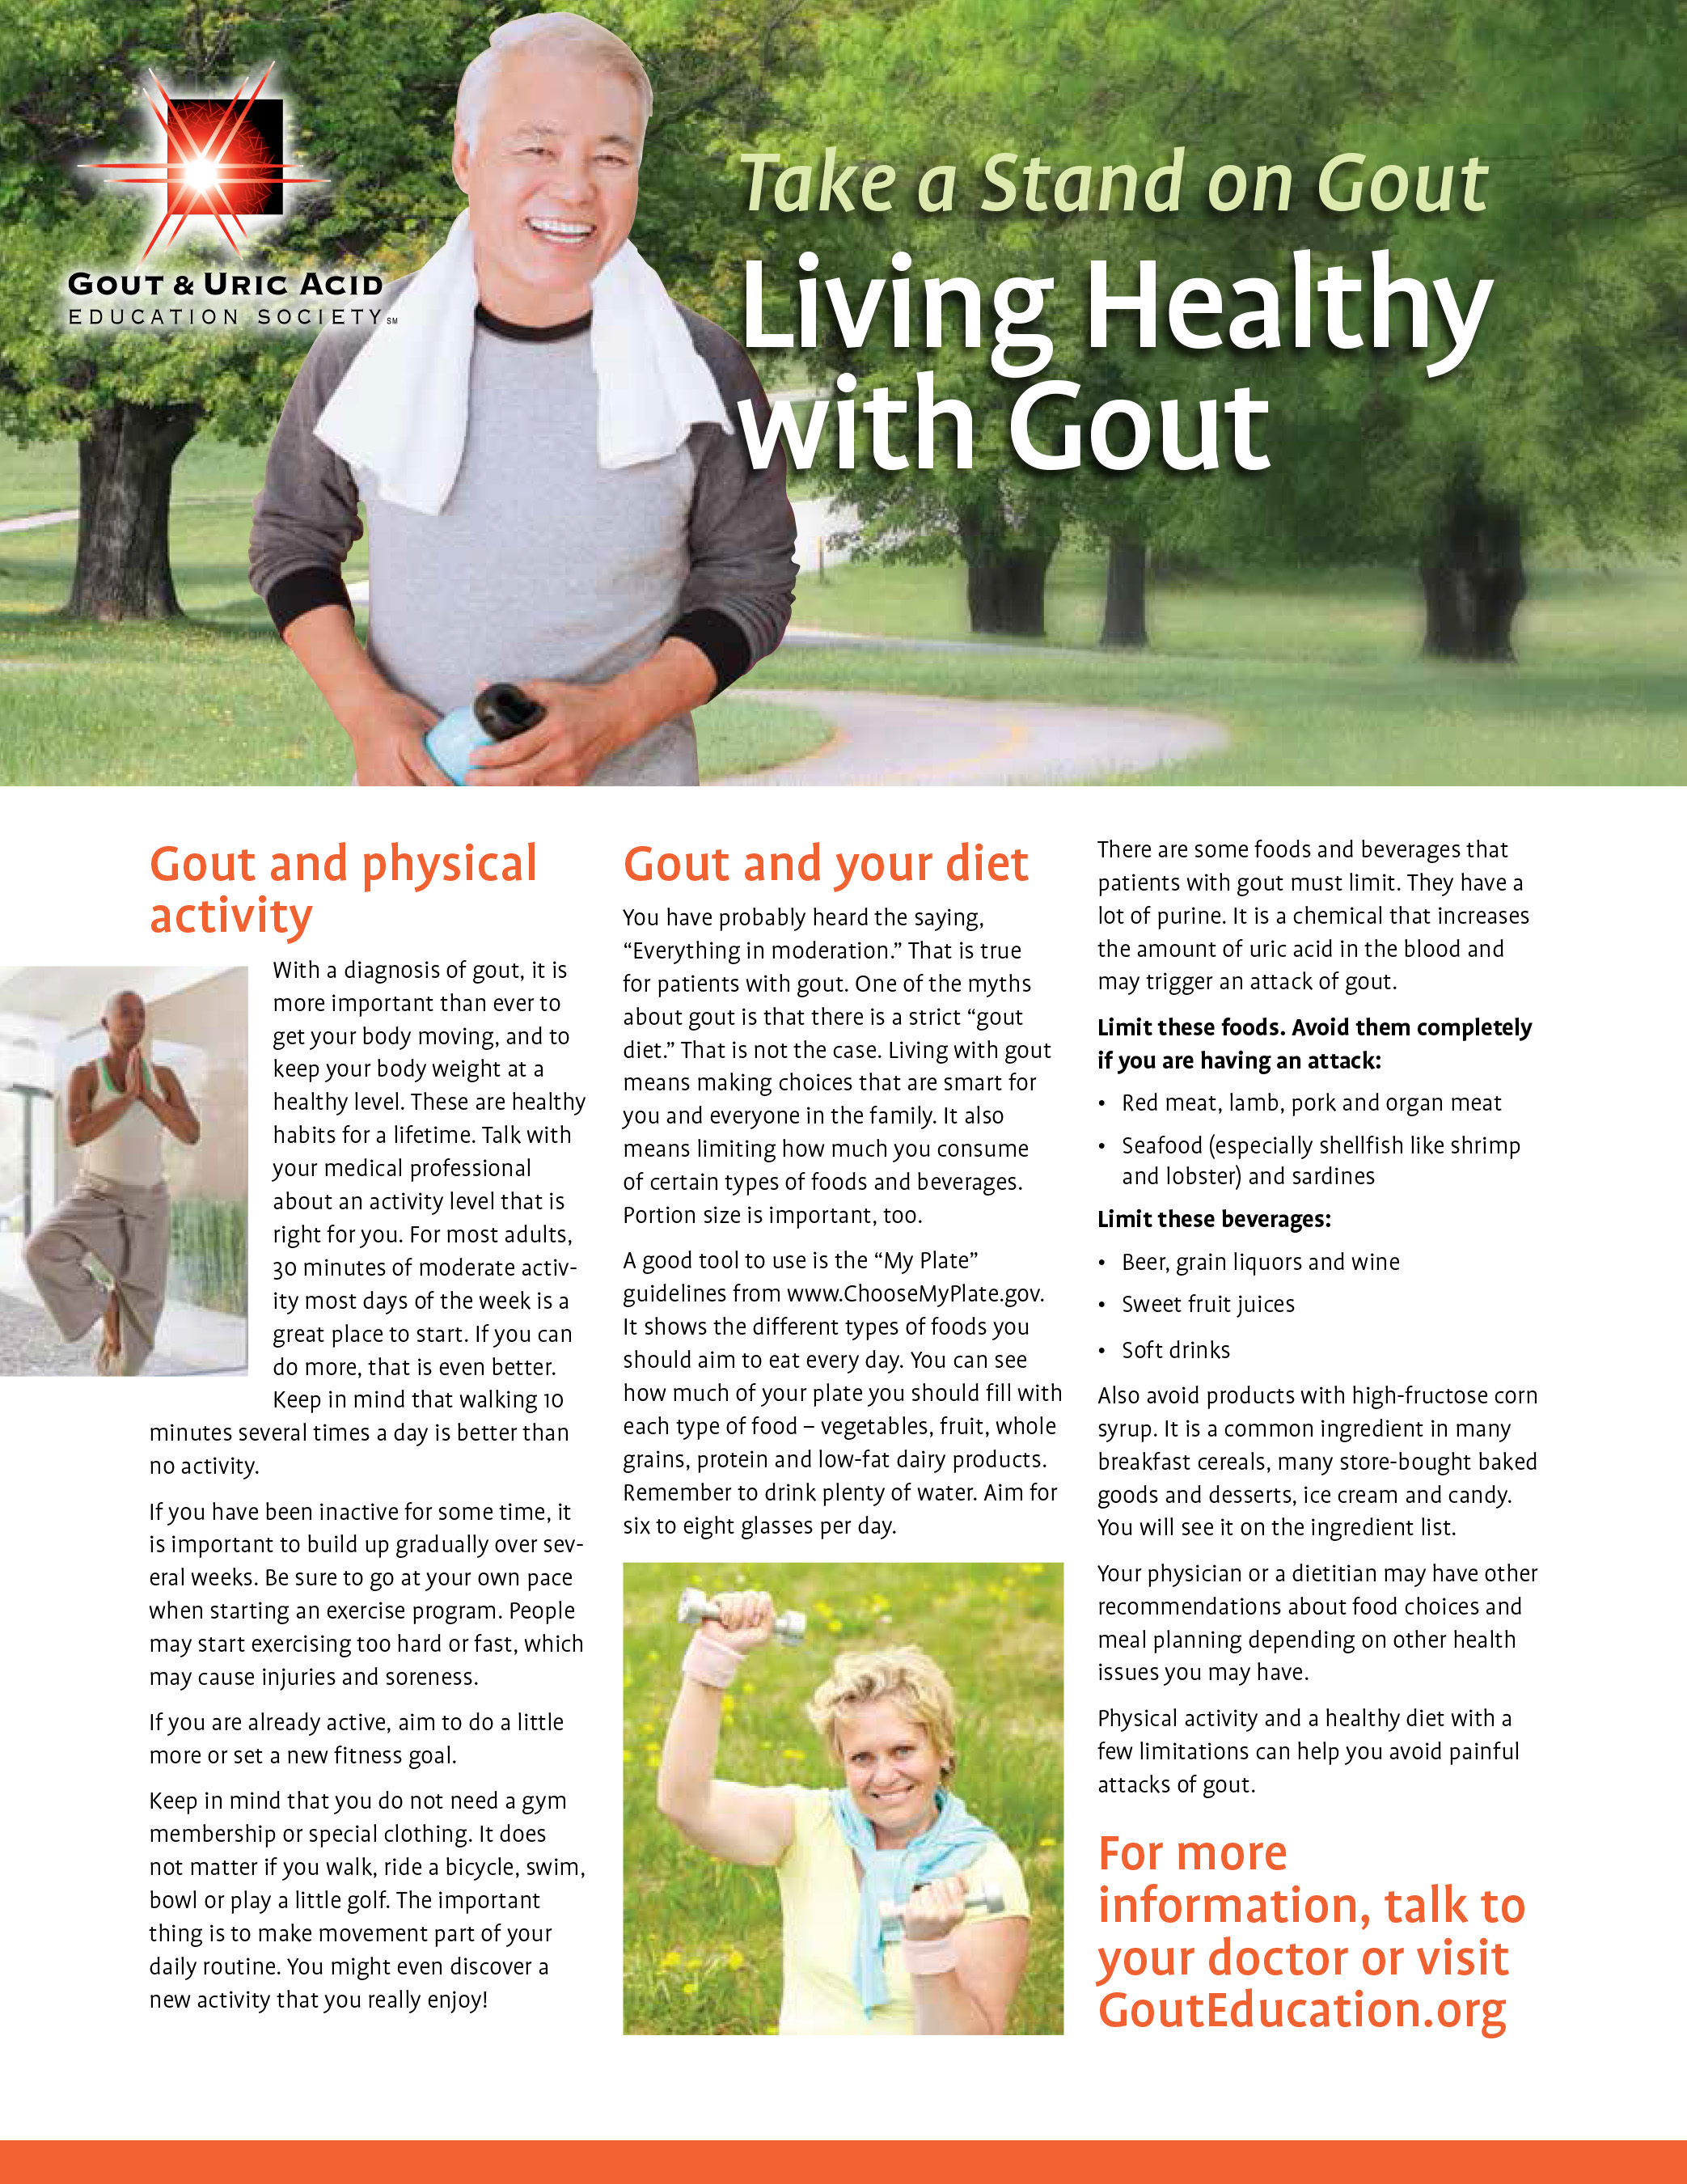 Living Healthy with Gout